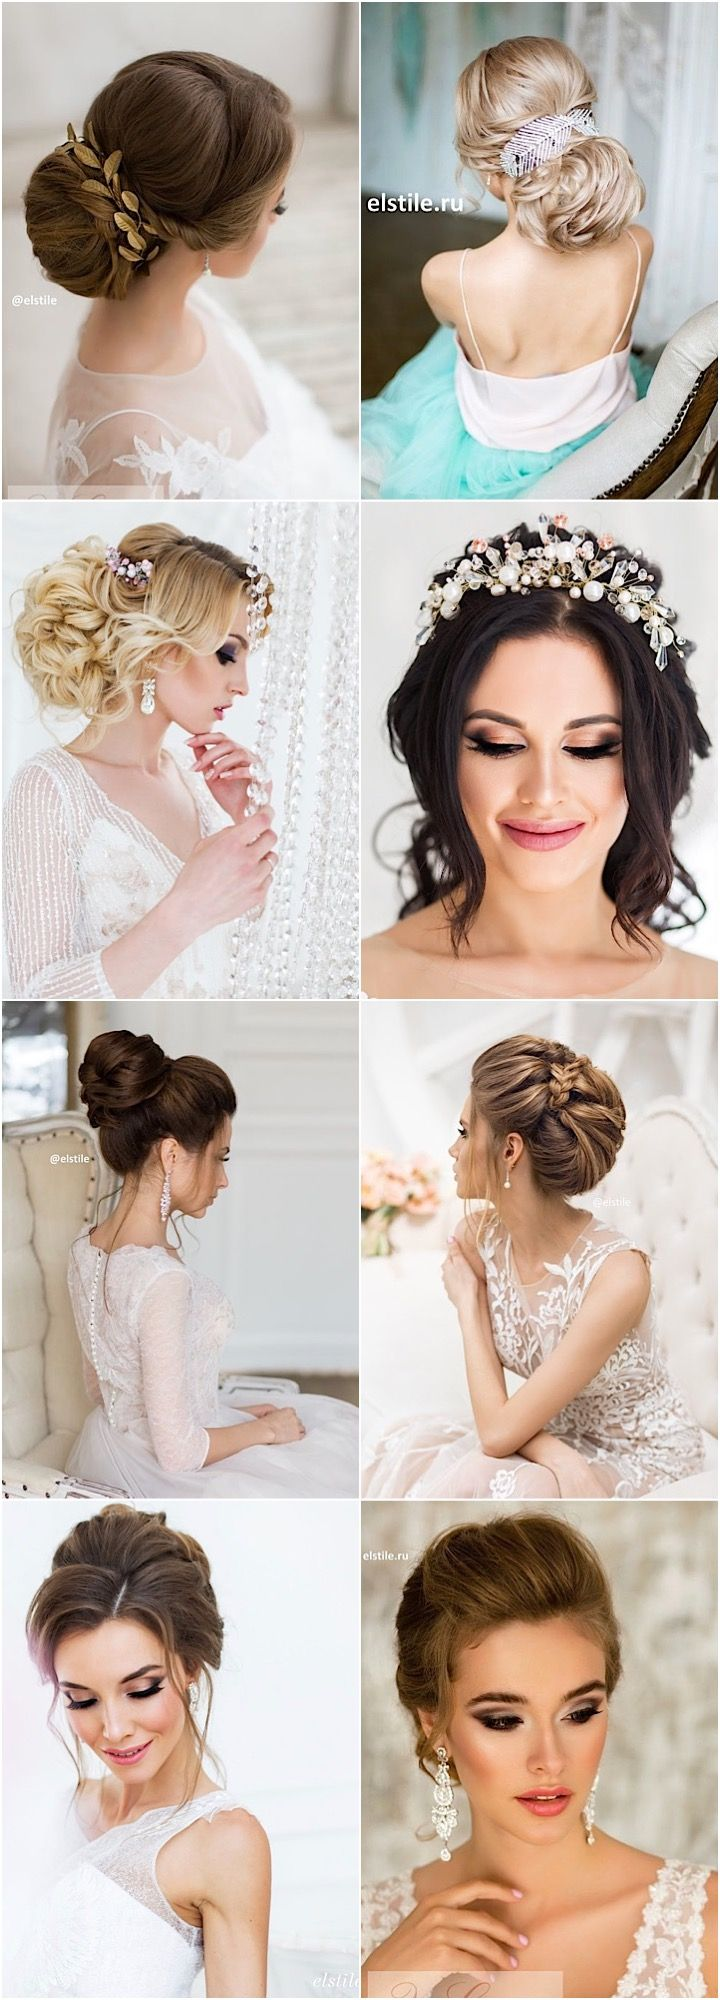 18 Wedding Updo Hairstyles That Are Beautiful From Every Angle ...